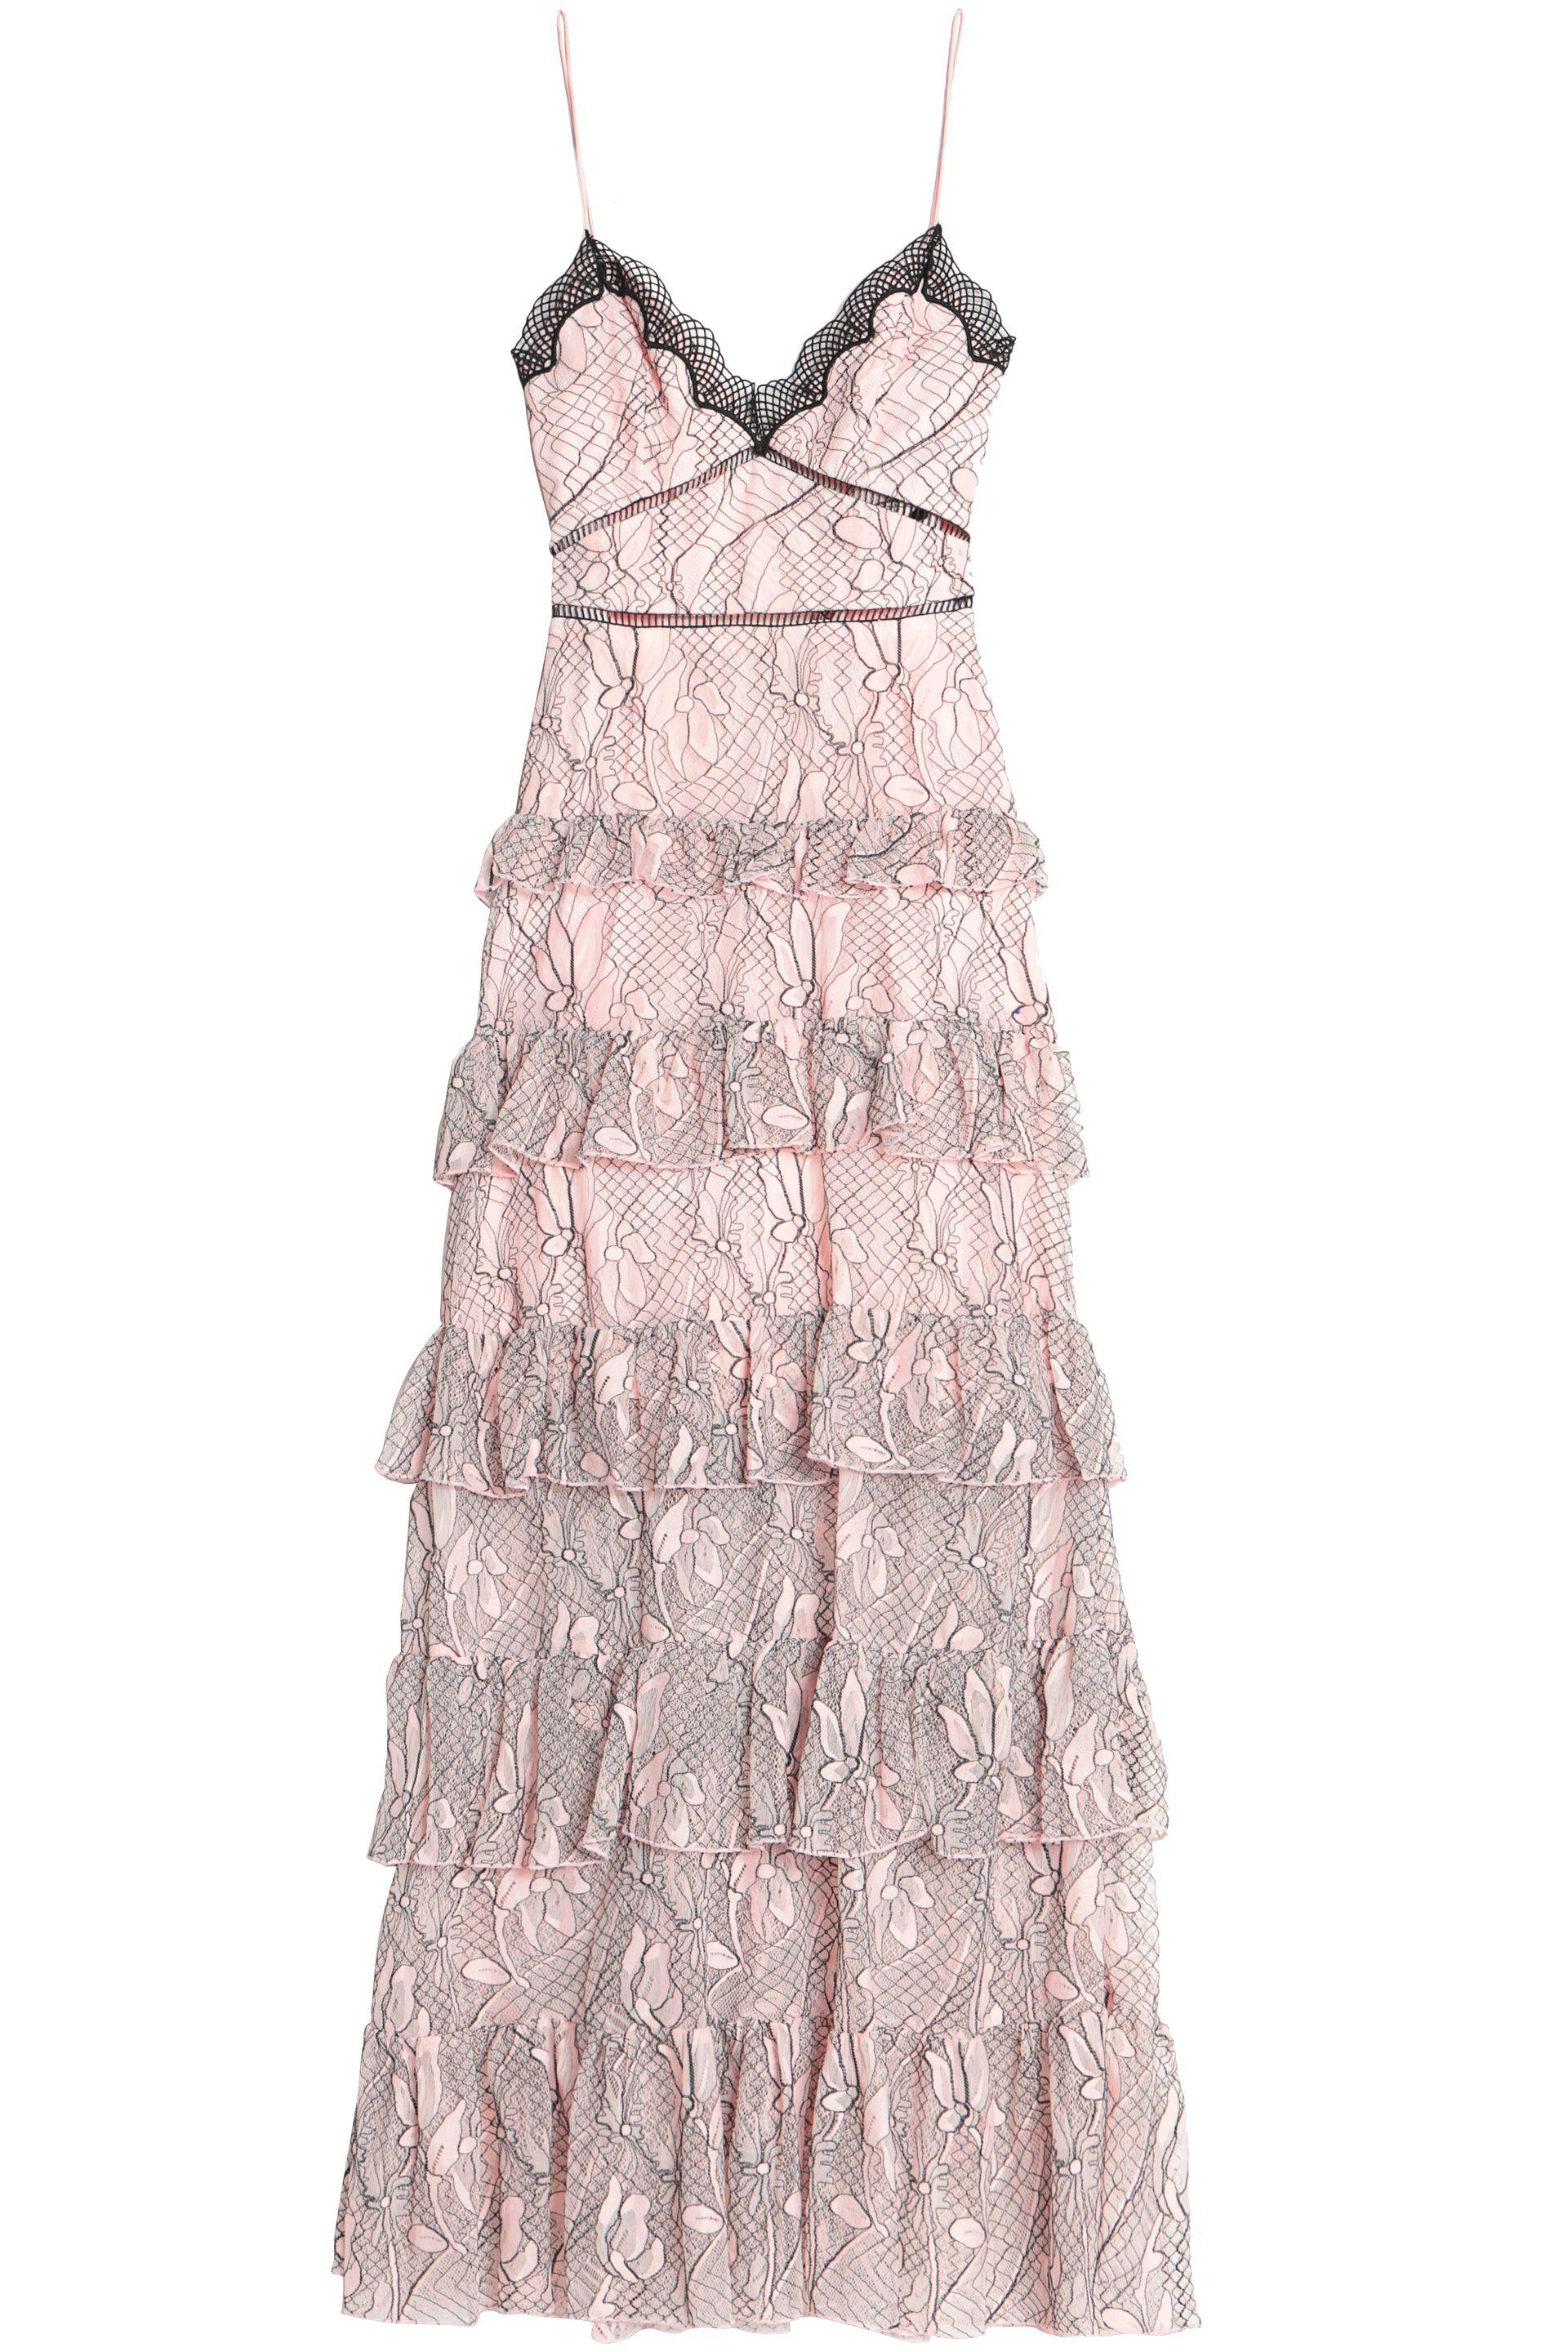 3dcc90130e0 Nicholas Iris Lace Gown in Pink - Lyst